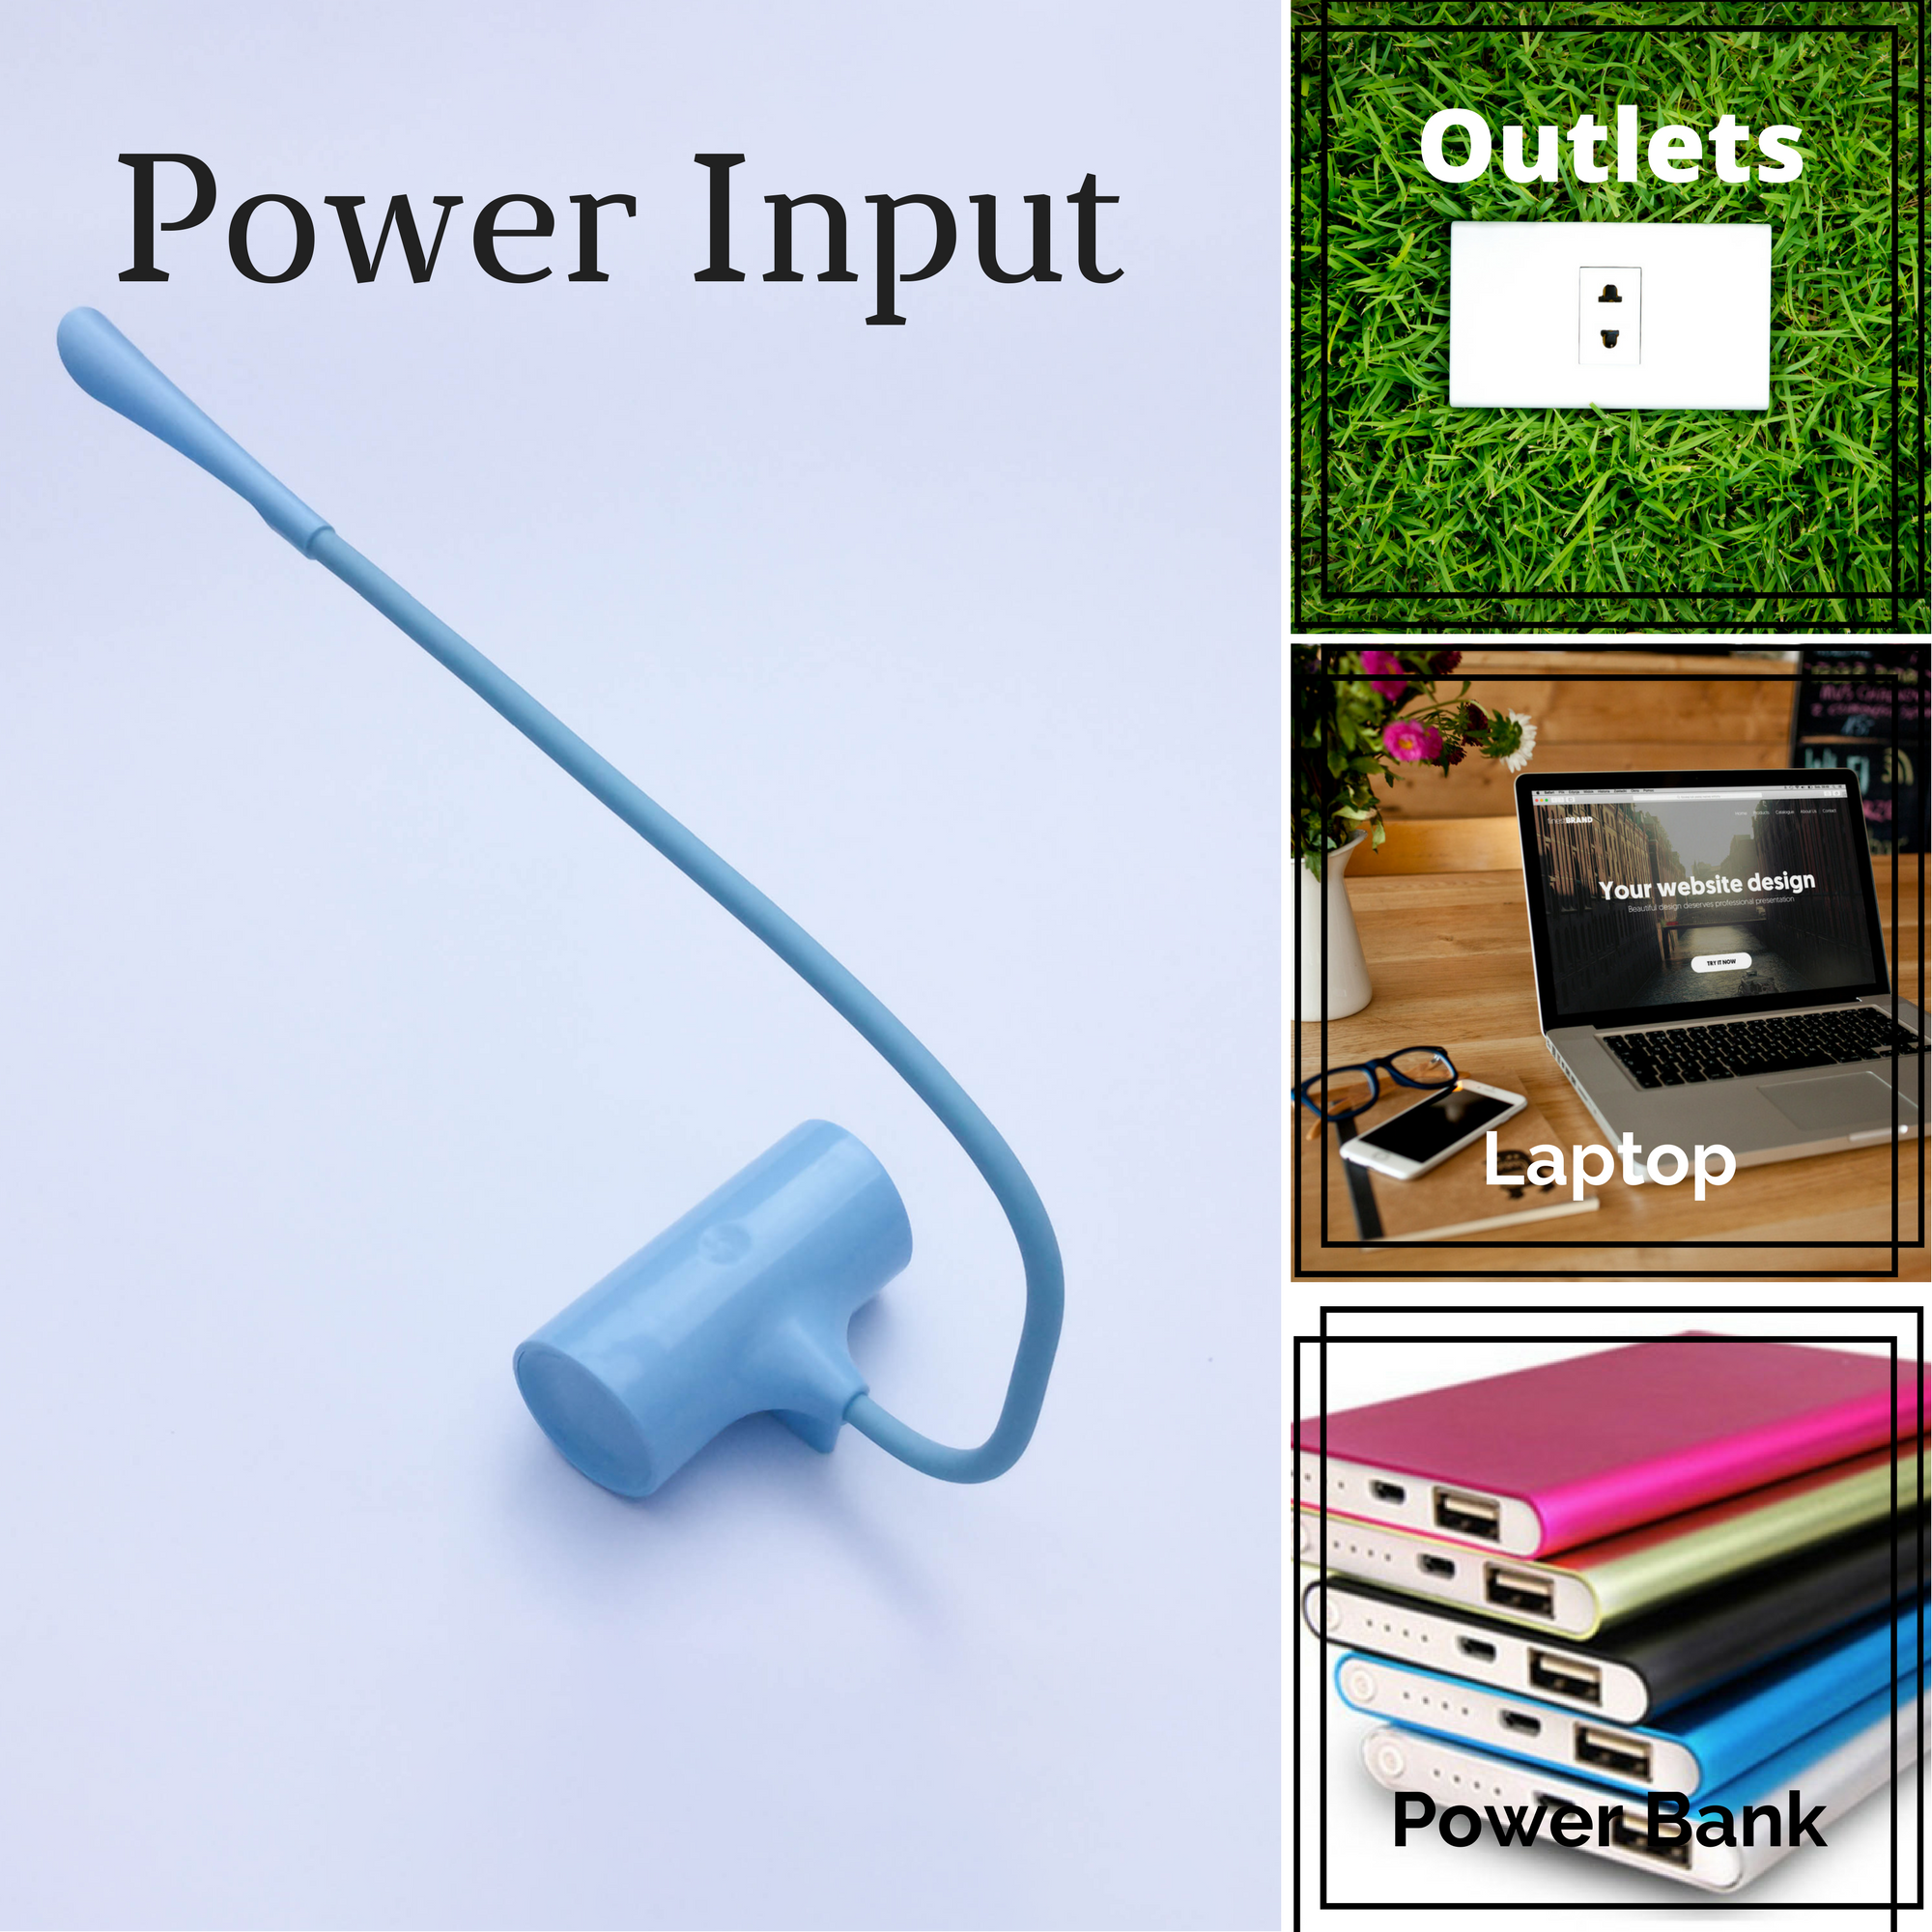 Different Power Input sources_power_bank_laptop_outlet